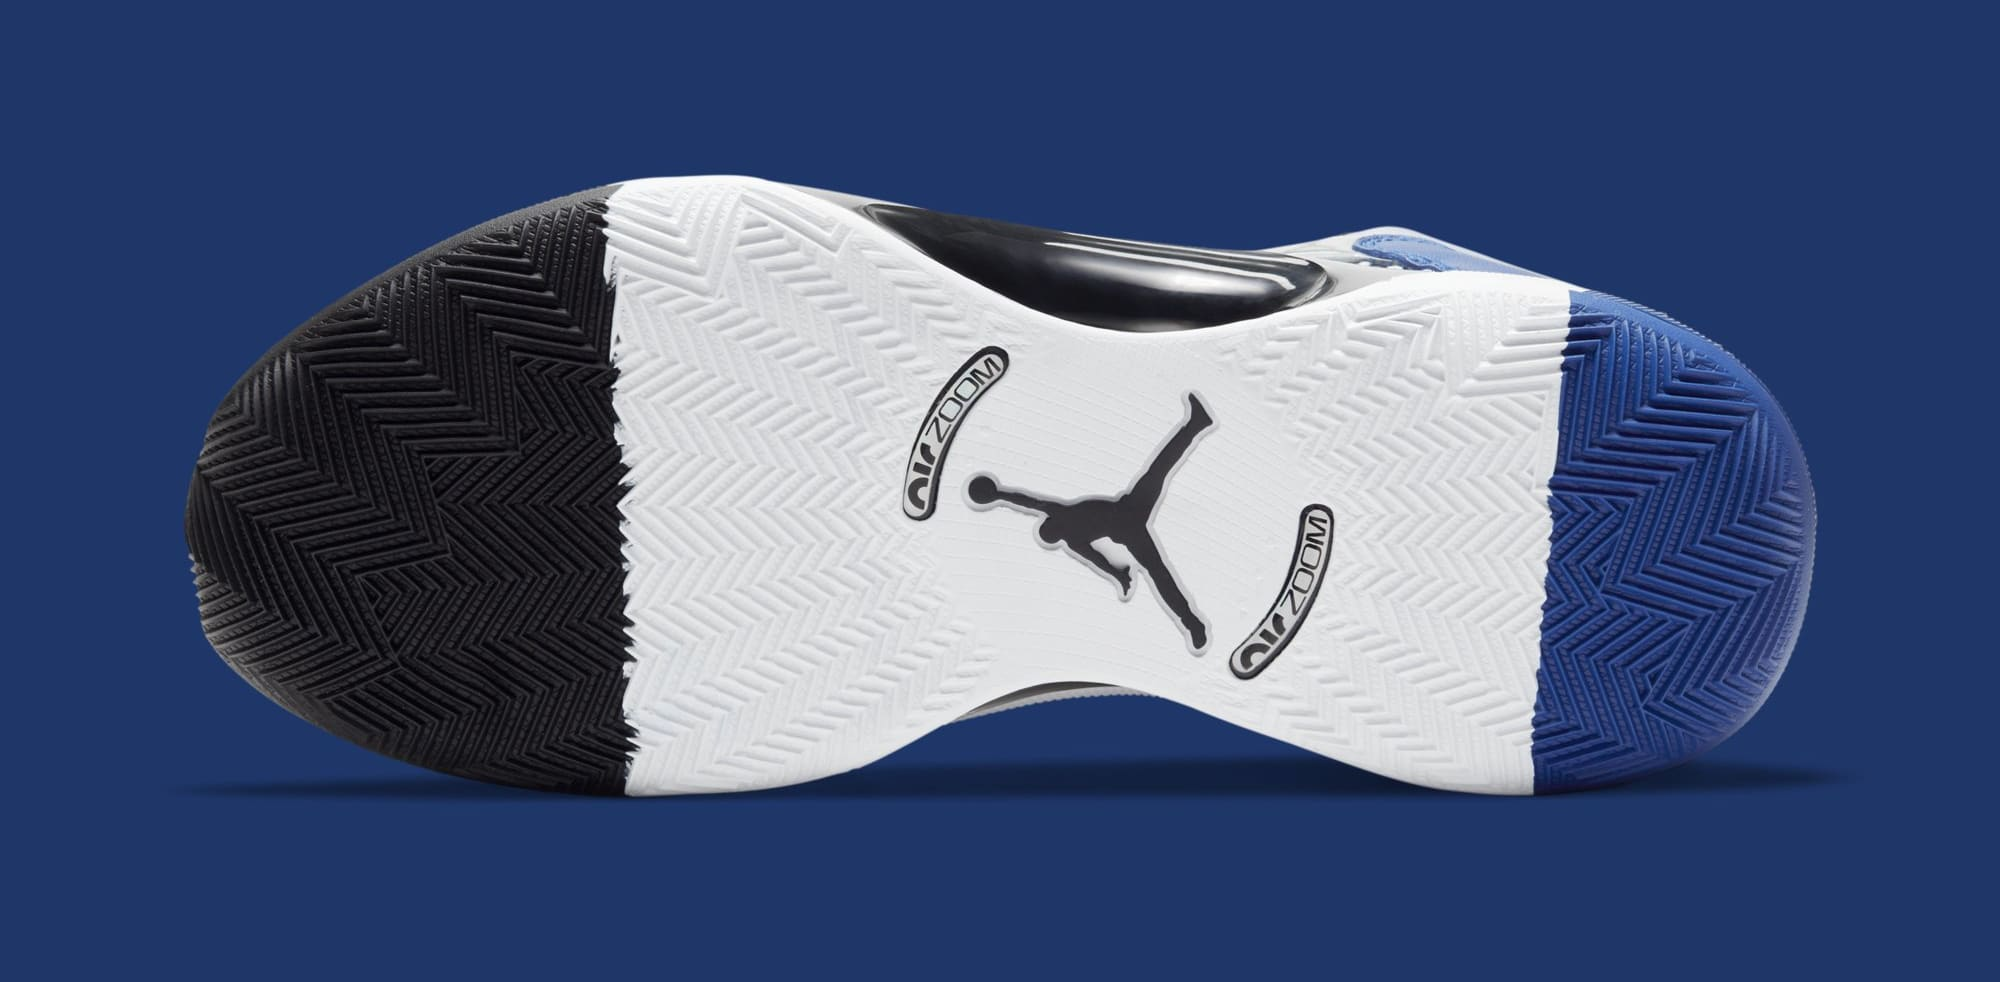 Fragment x Air Jordan 35 DA2371-100 Outsole